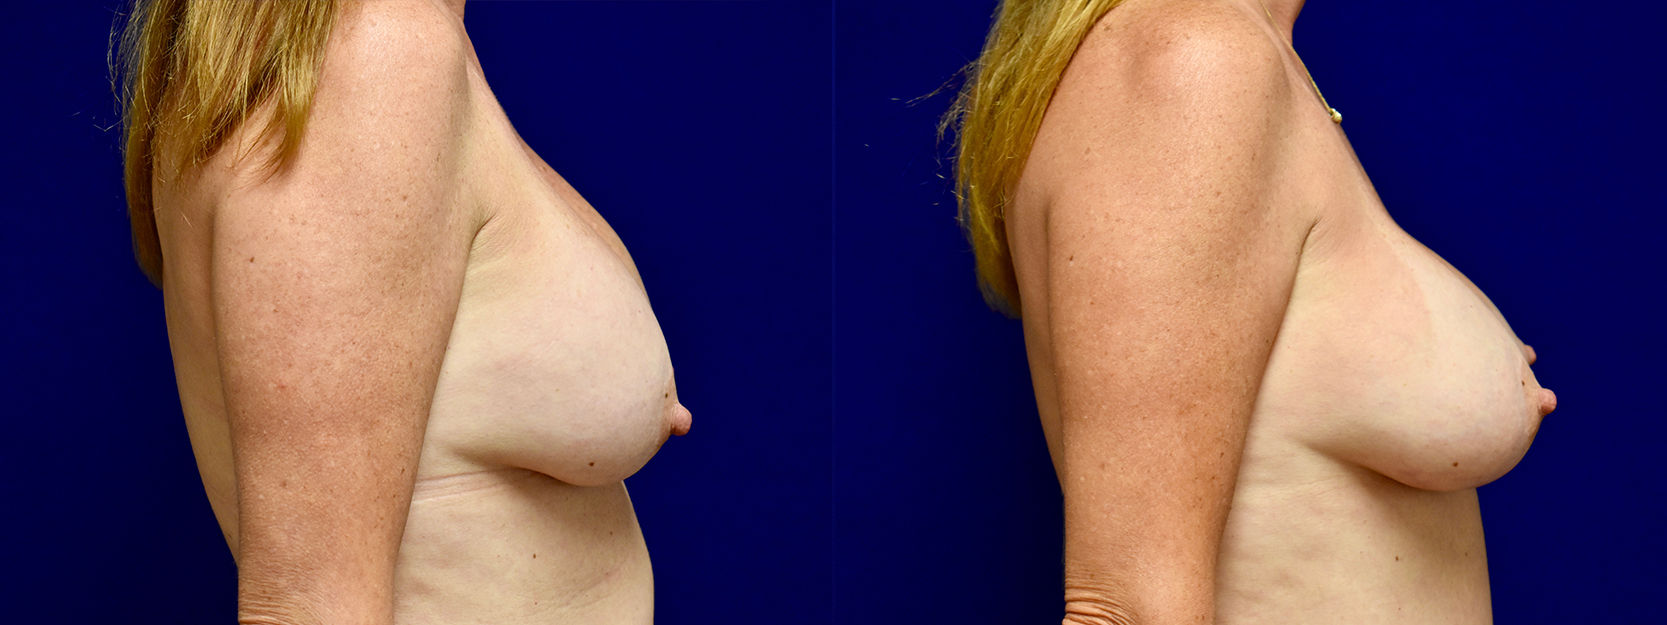 Right Profile View - Breast Implant Revision